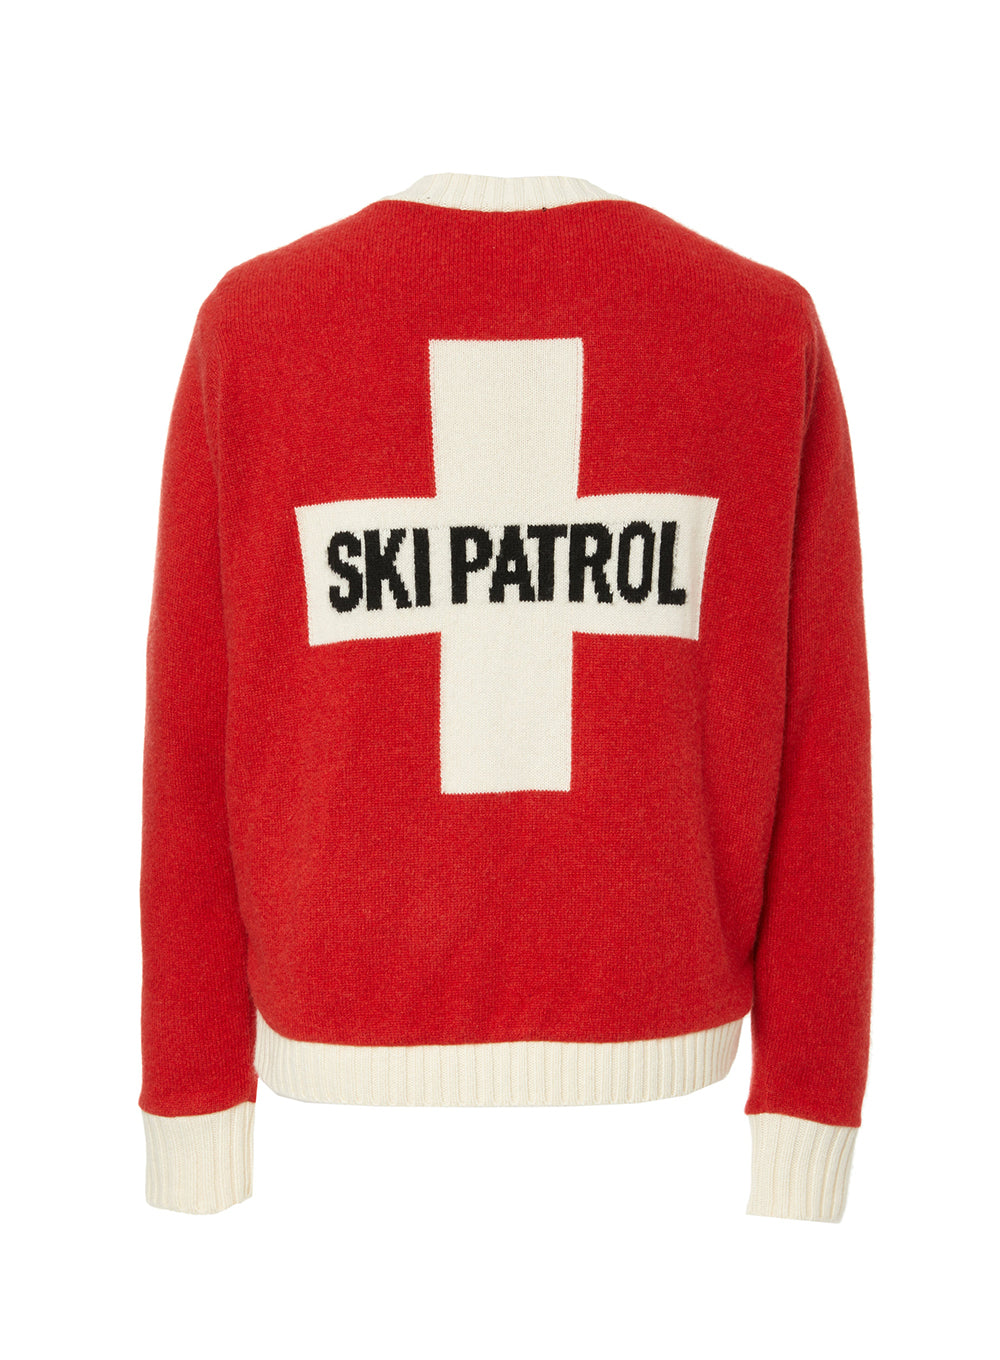 ELDER STATESMAN | 'Ski Patrol' Cashmere Sweater in Red